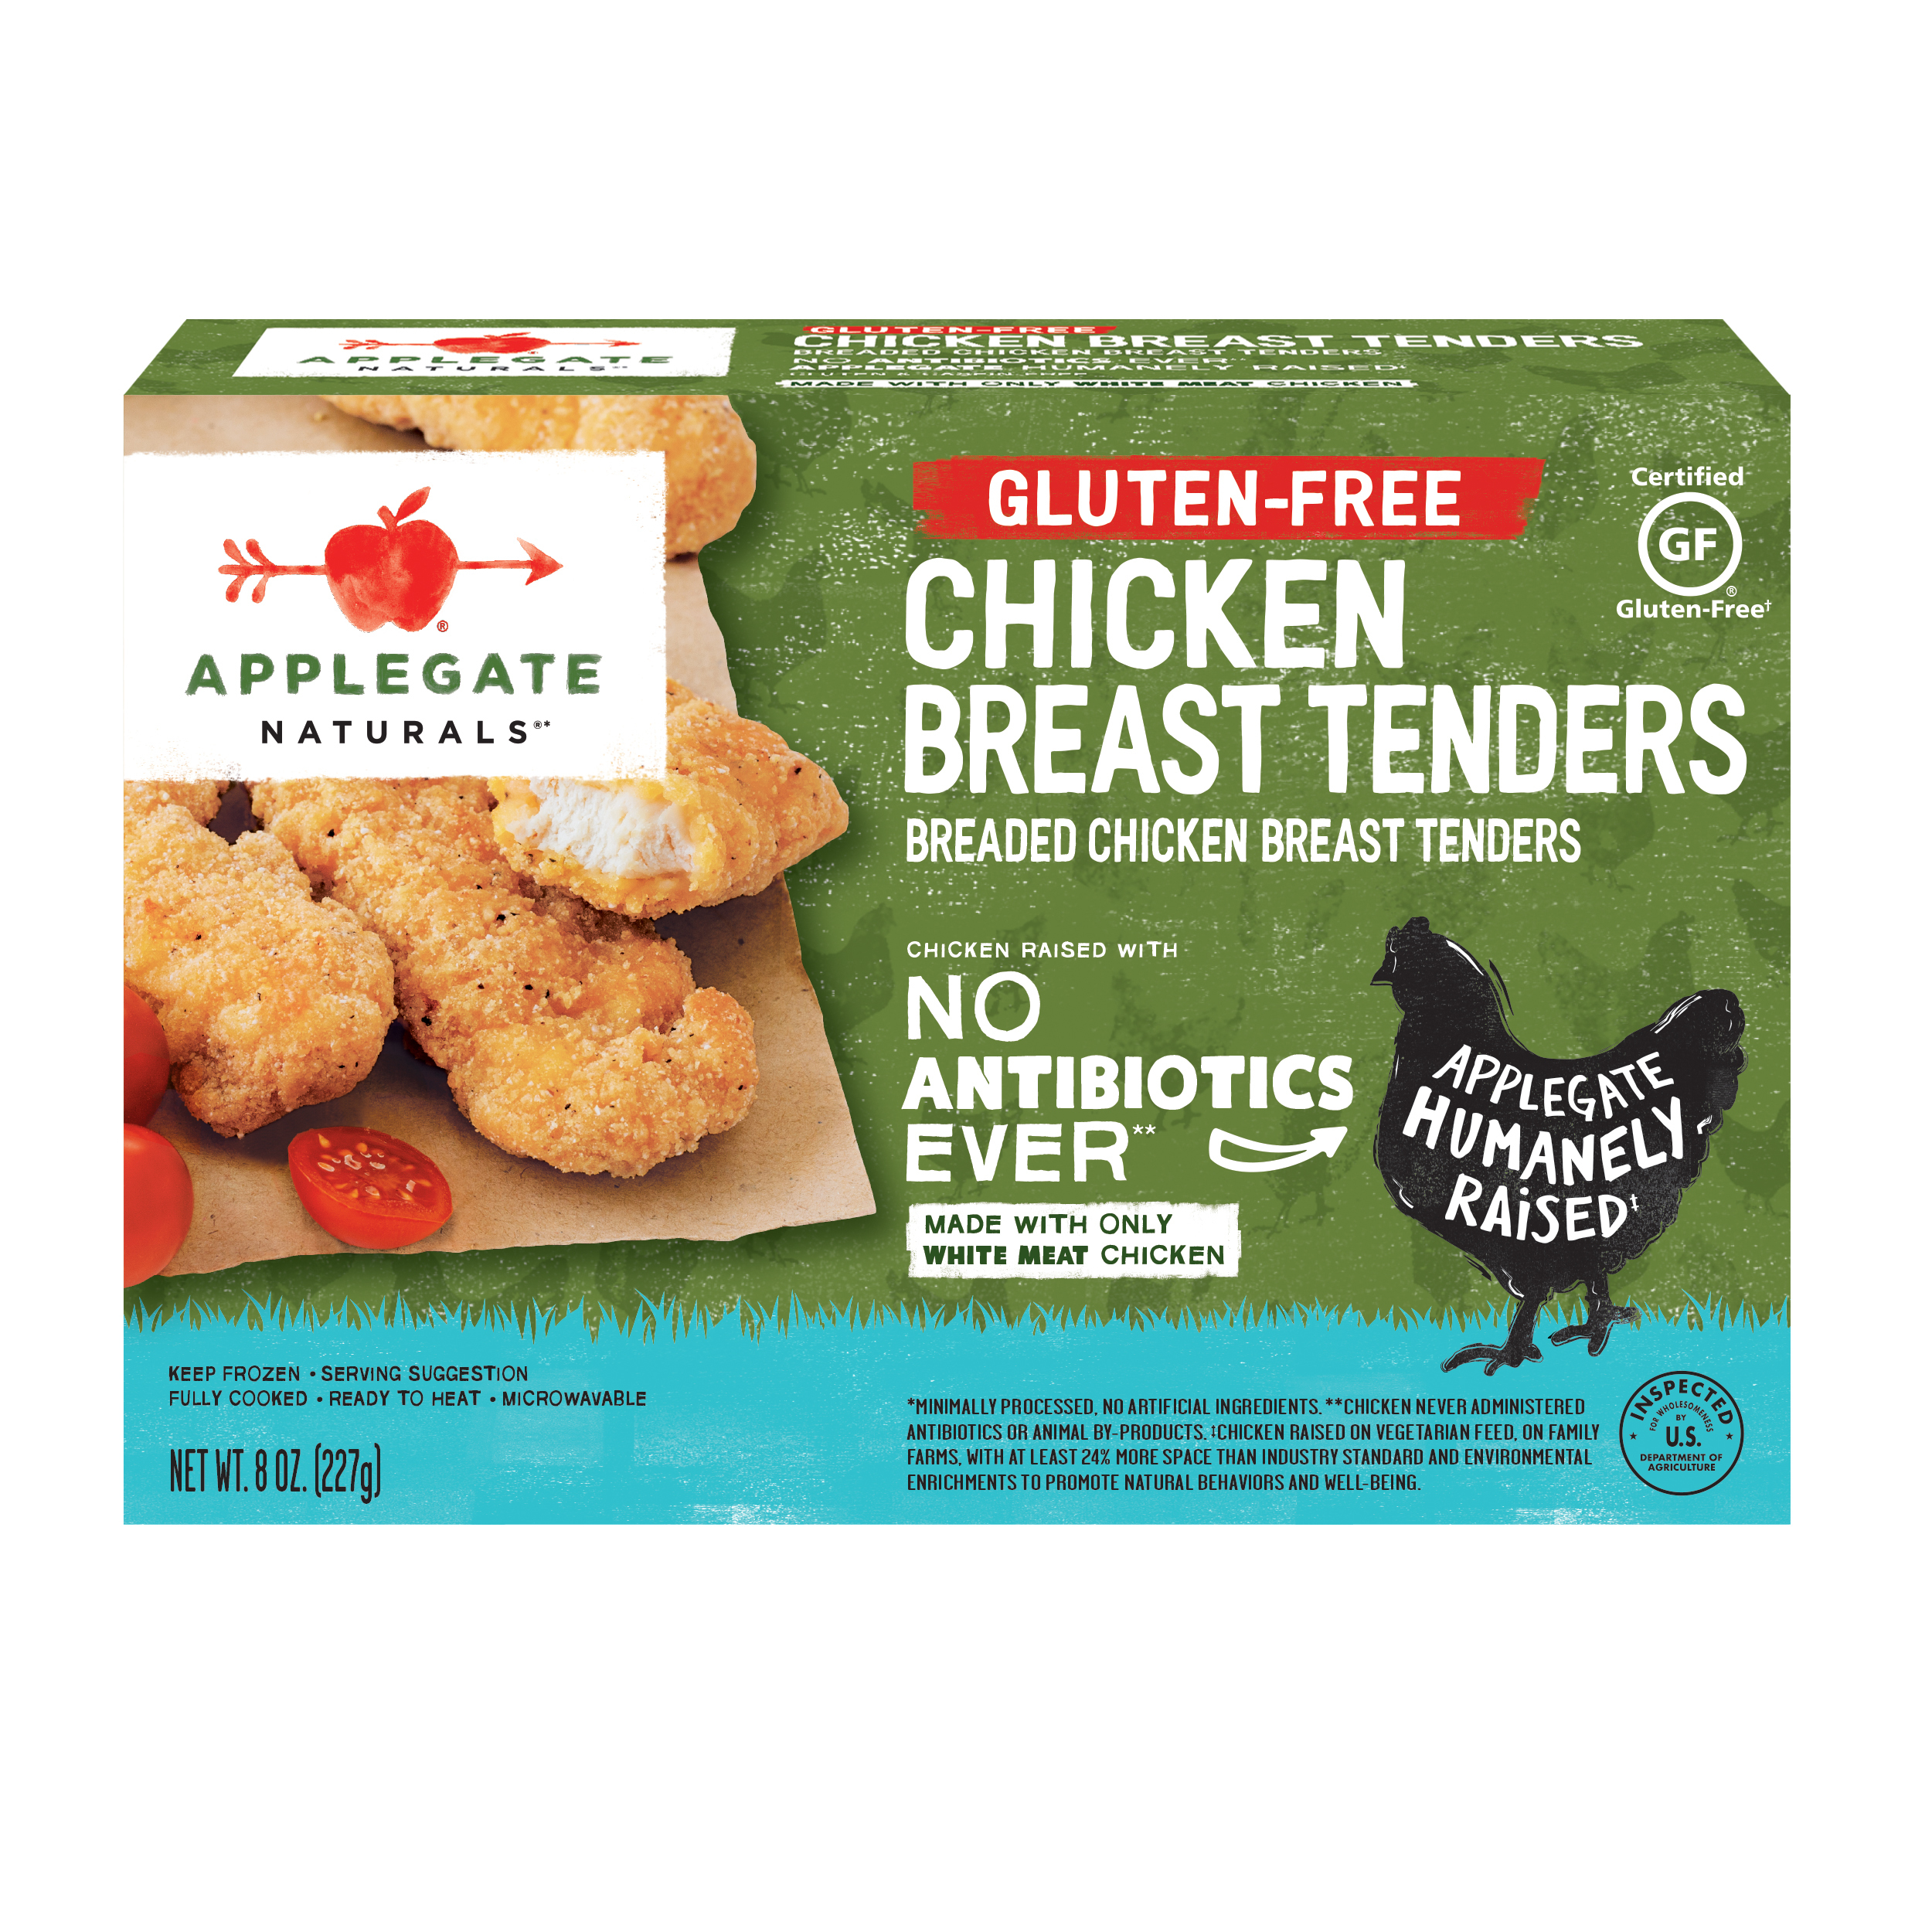 CHICKEN BREAST TENDERS | The Natural Products Brands Directory